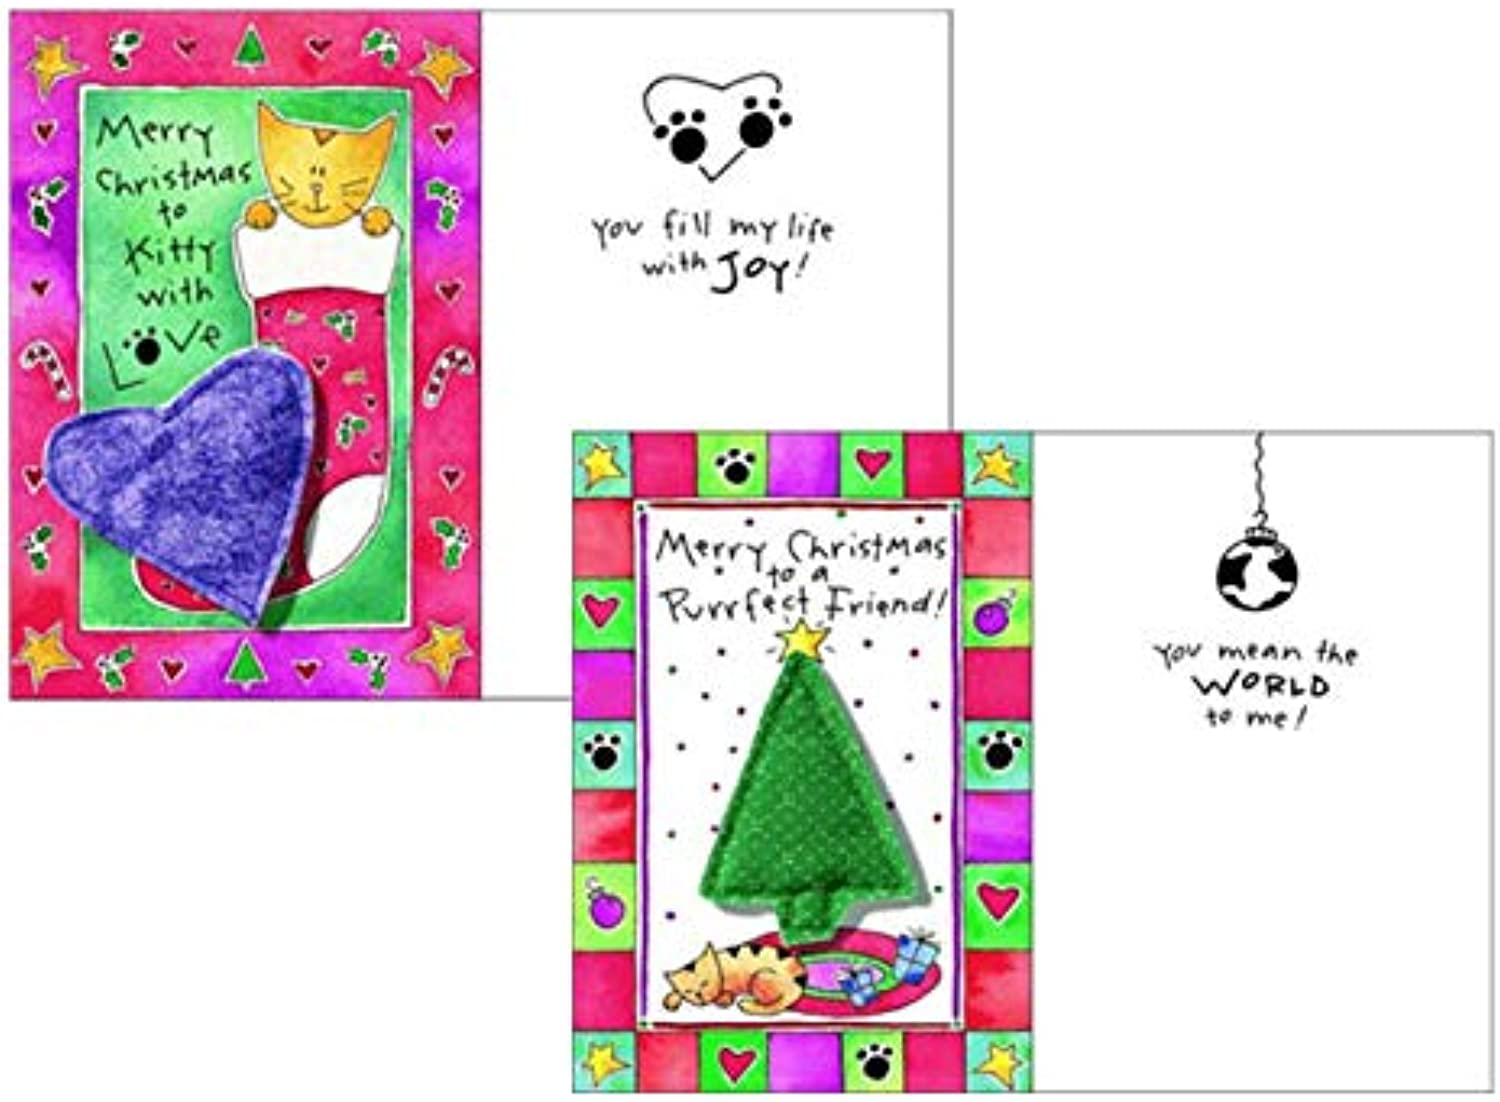 Crunchkins PurrFECT Greetings Christmas Card with Catnip Toy, 2 Pack